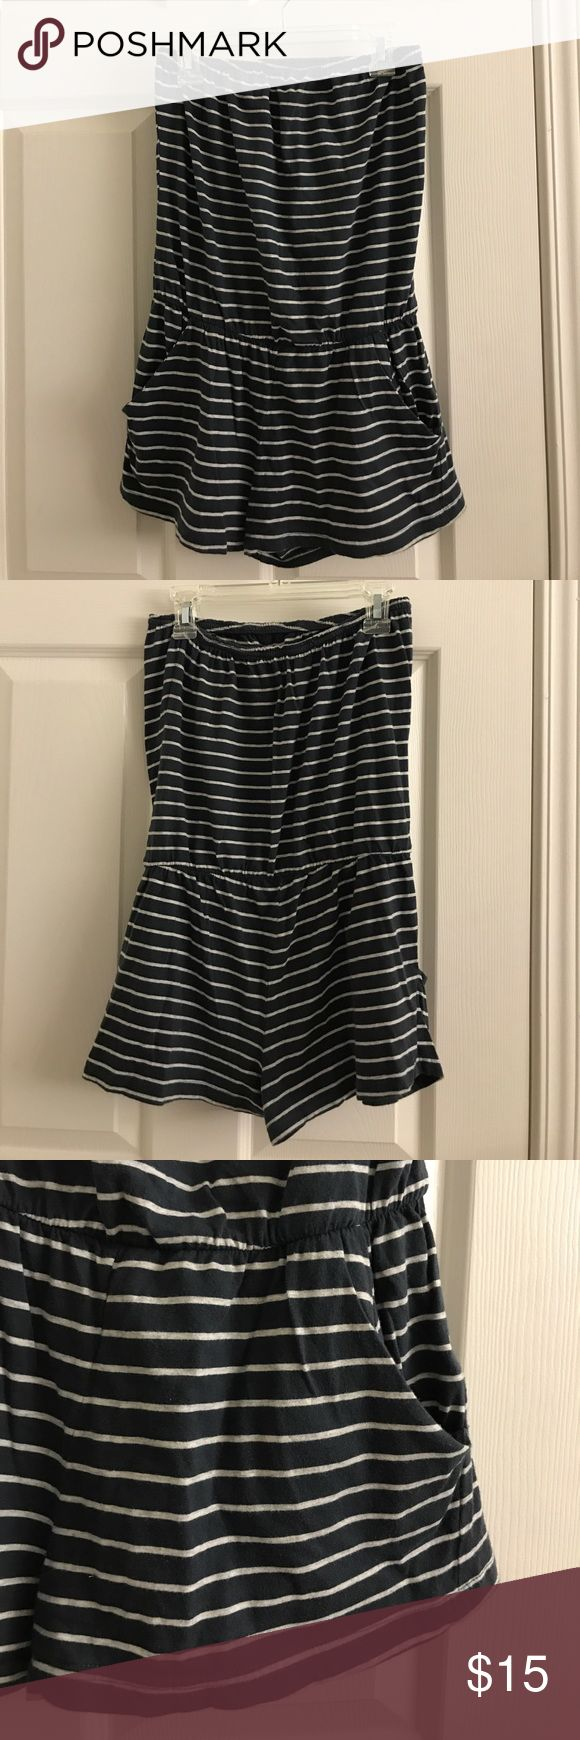 Navy Striped Romper Forever 21 / Heritage 1981 navy blue white striped romper w/ pockets. Worn lightly, strapless, and soft cotton fabric. All offers considered! Heritage 1981 Pants Jumpsuits & Rompers